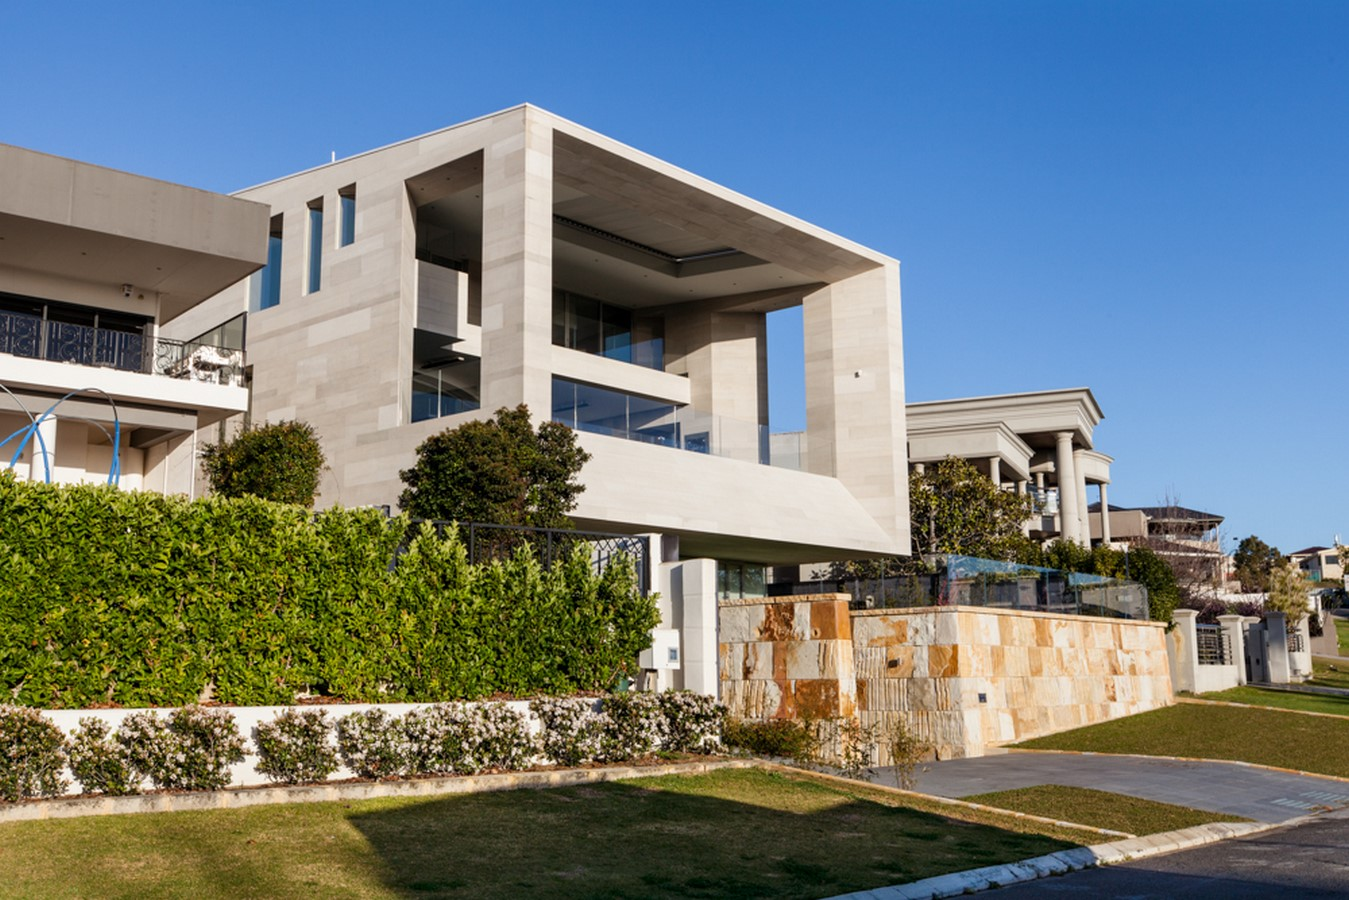 Doongalla Road Residence, Melbourne. - Sheet2